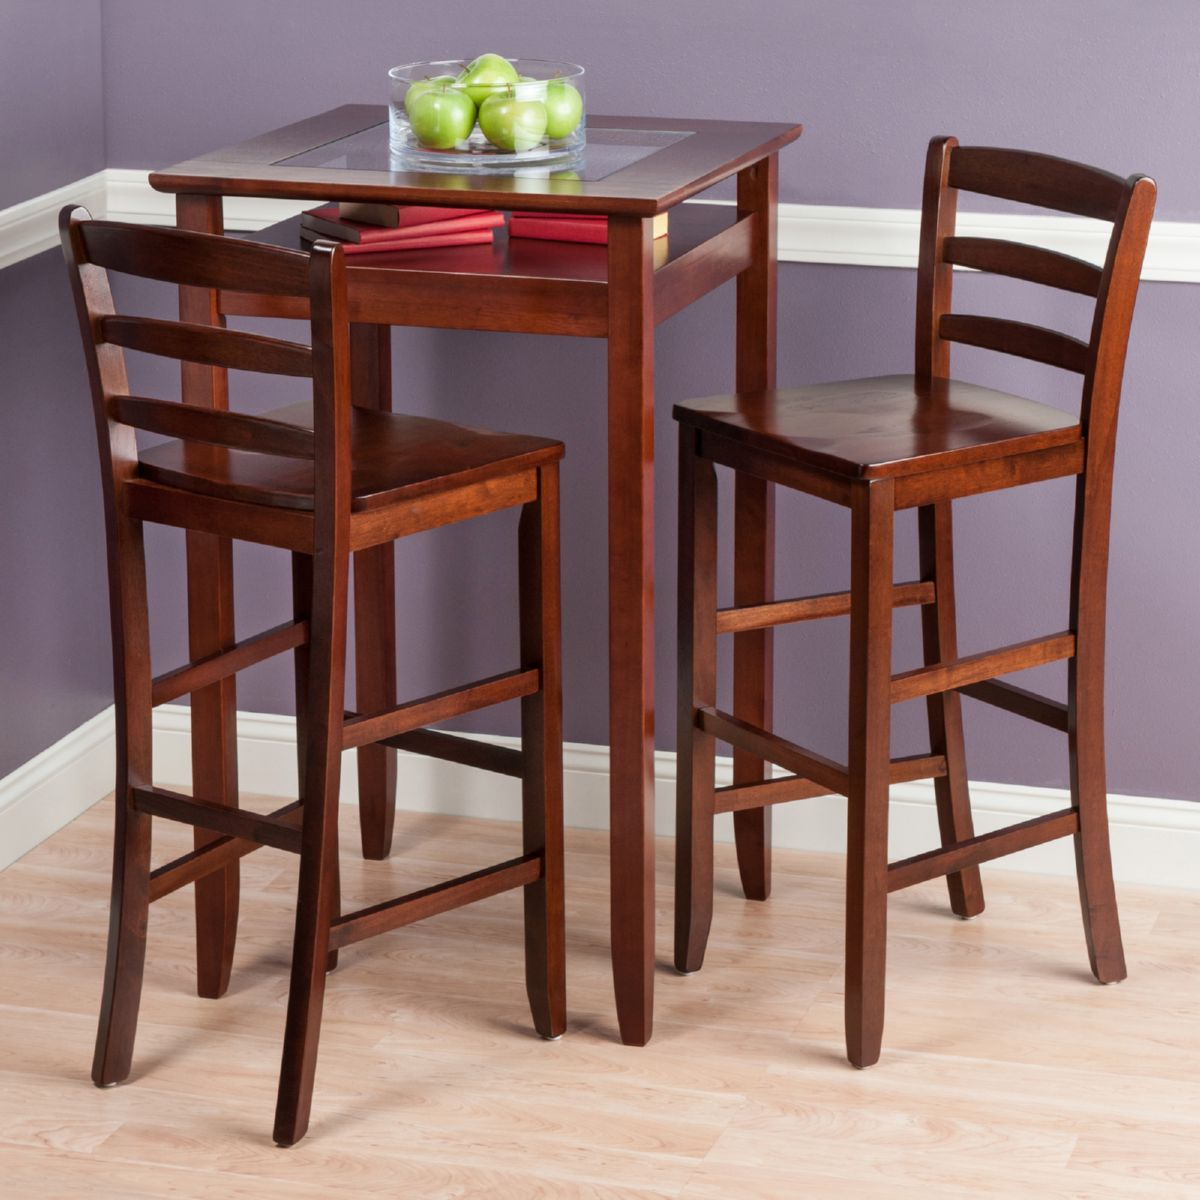 Winsome Halo 3 Piece Pub Table Set w 2 Ladder Back Stools